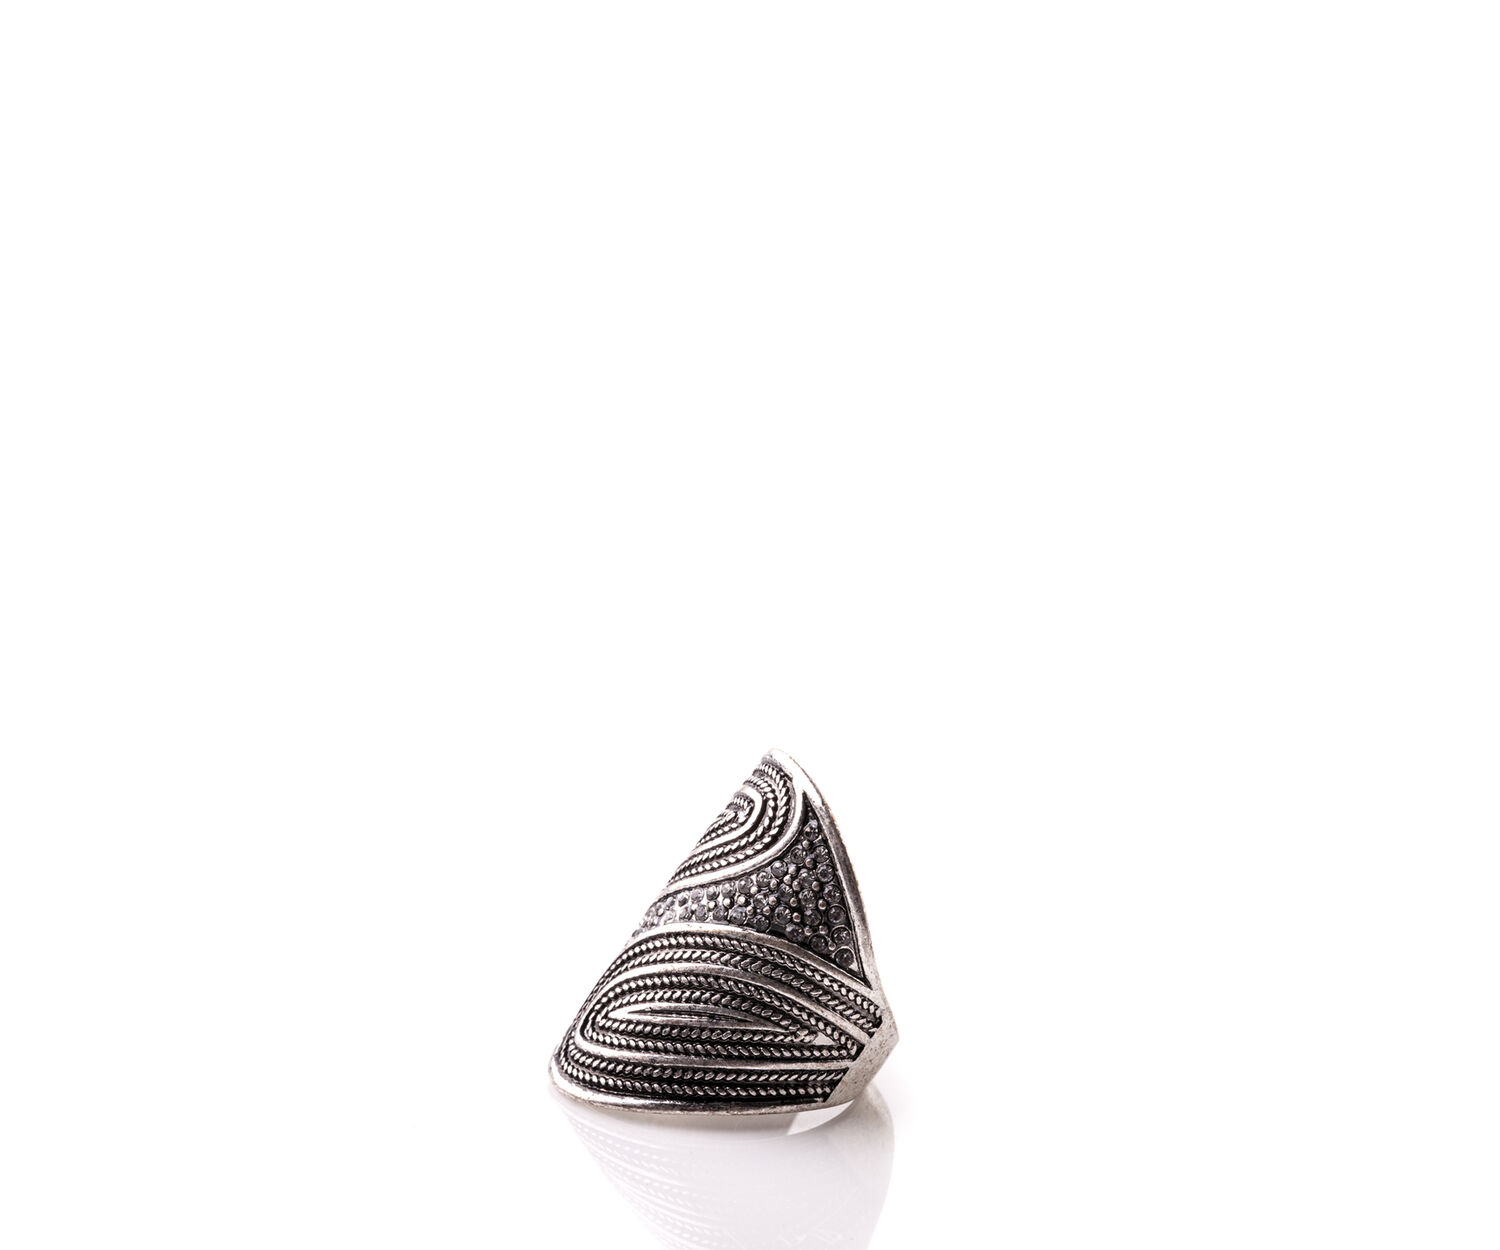 Oasis, SHIELD RING Silver 1